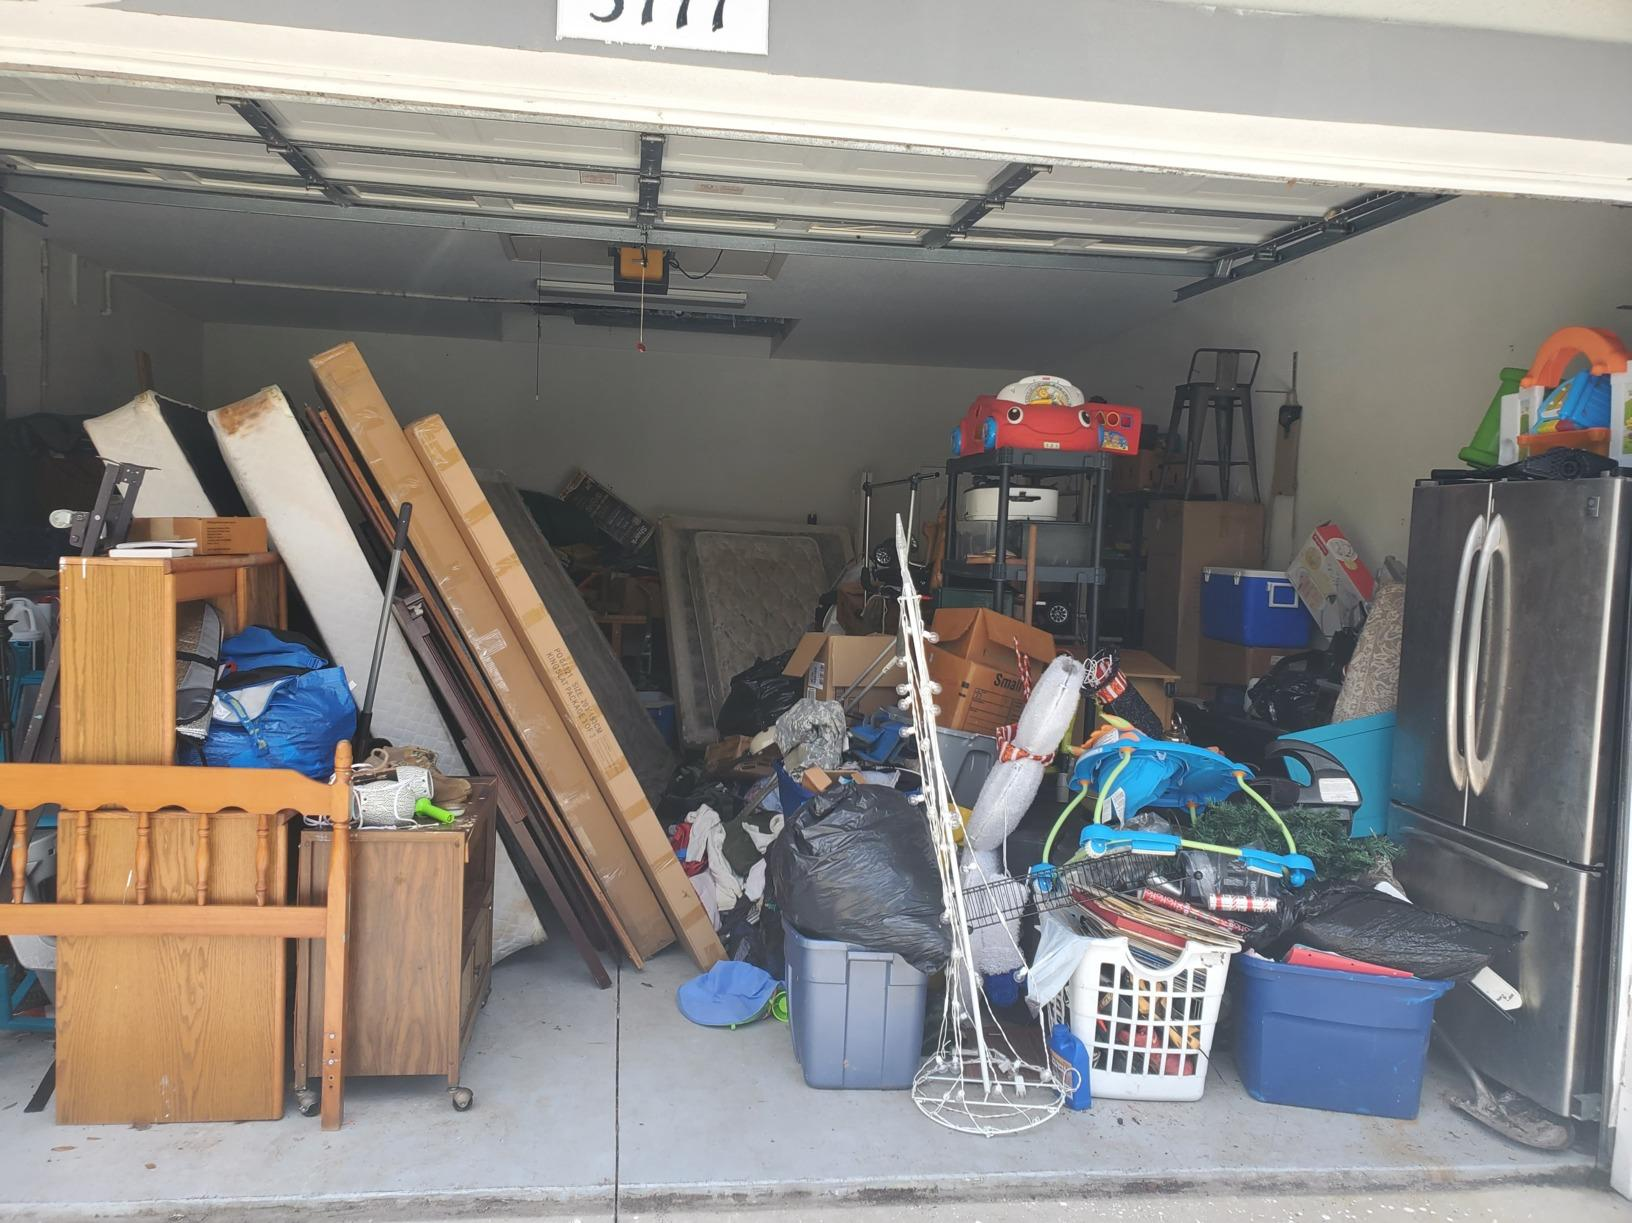 Garage clean out Parrish, FL - Before Photo